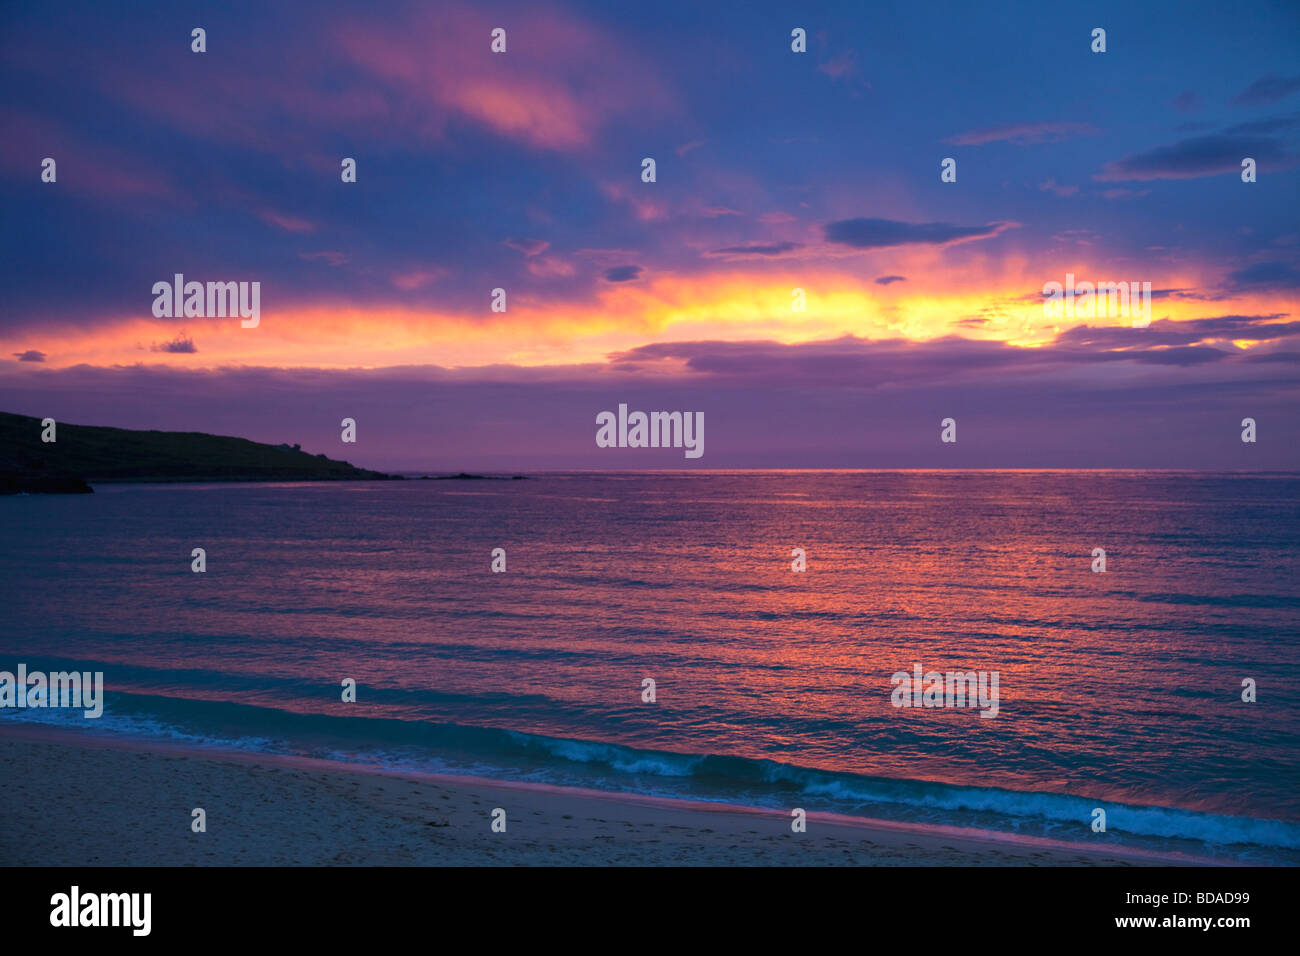 Sunset and clouds over Atlantic Ocean on Porthmeor Beach summer twilight St Ives West Penwith Cornwall England UK - Stock Image